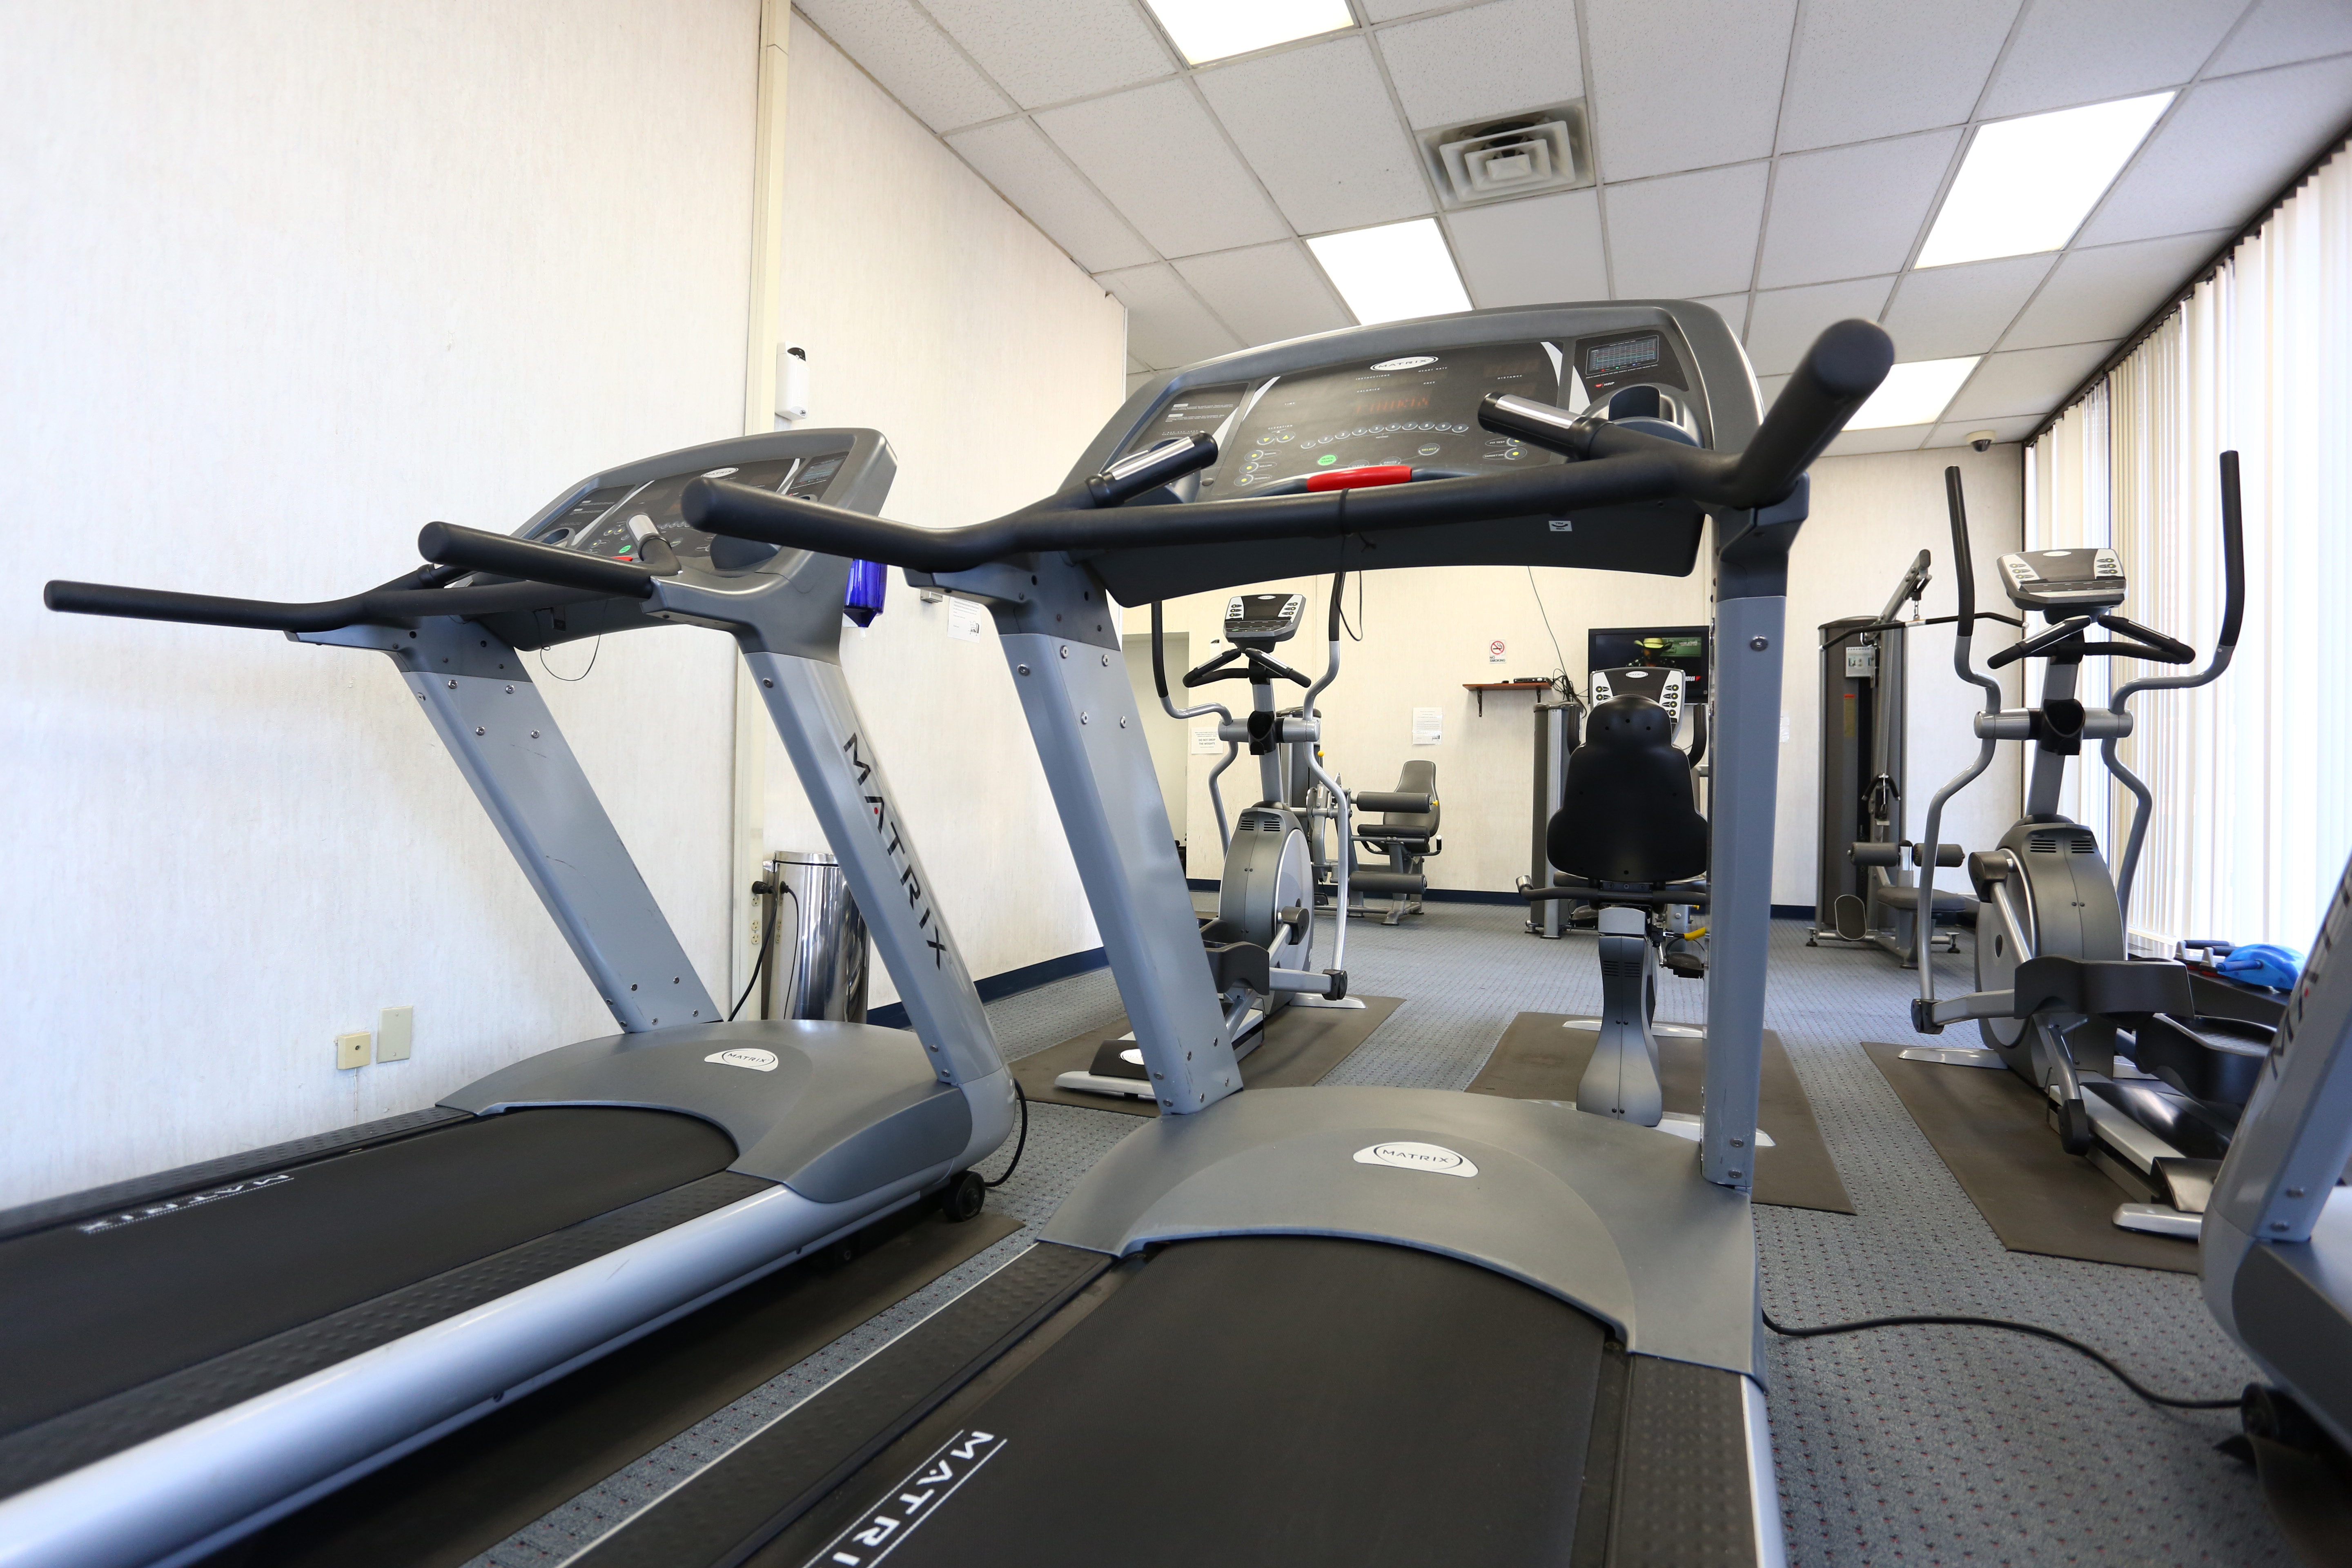 Two High-tech Fitness Centers